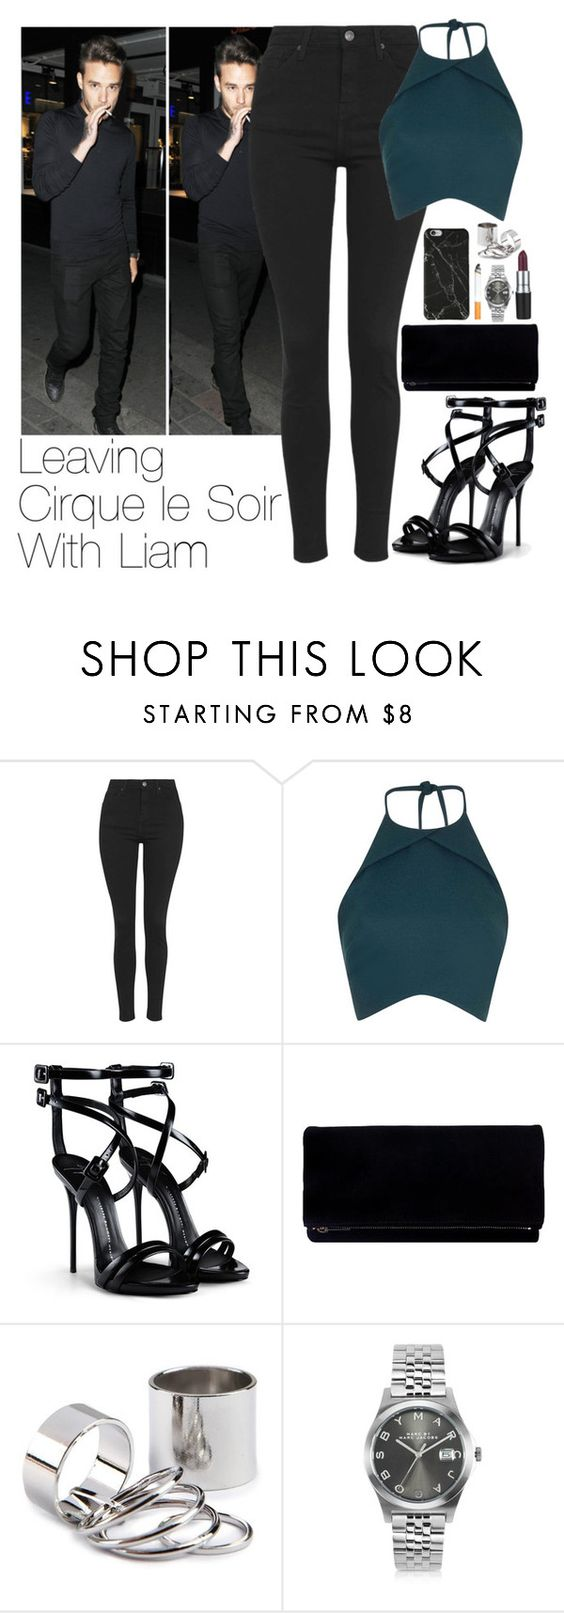 """Leaving Cirque le Soir With Liam"" by zarryalmighty ❤ liked on Polyvore featuring Payne, Topshop, Rebson, Giuseppe Zanotti, M.A.C, Forum, Marc by Marc Jacobs, OneDirection, LiamPayne and onedirectionoutfits"